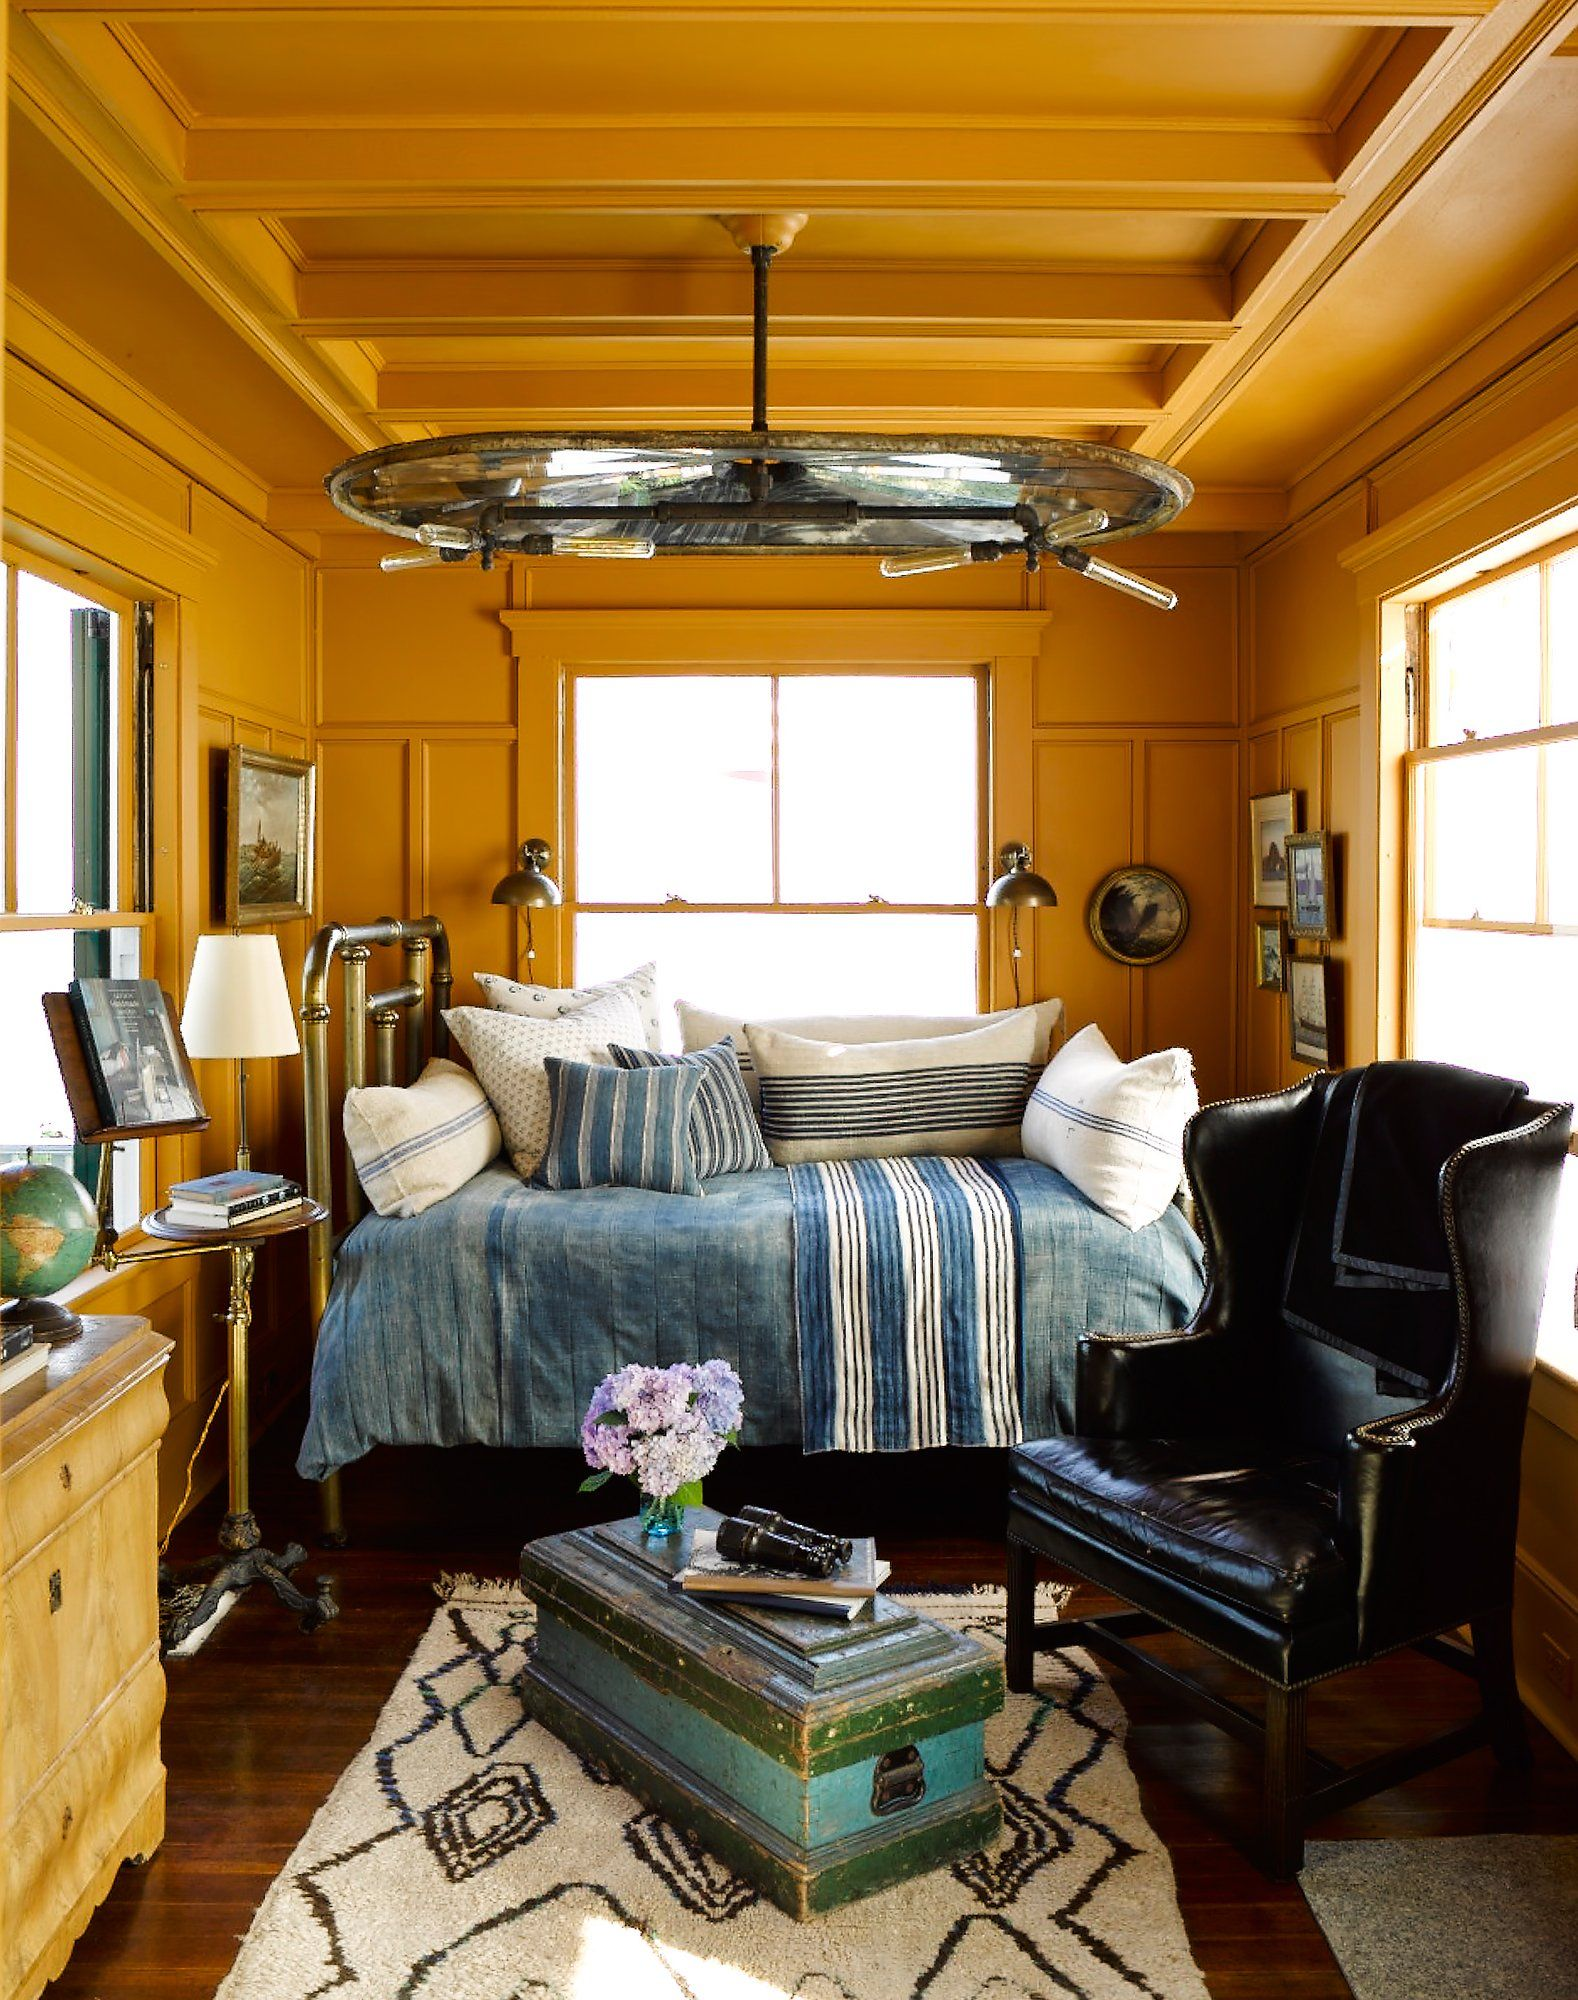 Bedroom Designer Tool Bigger Isn't Better 8 Seriously Inspiring Tiny Rooms And Their